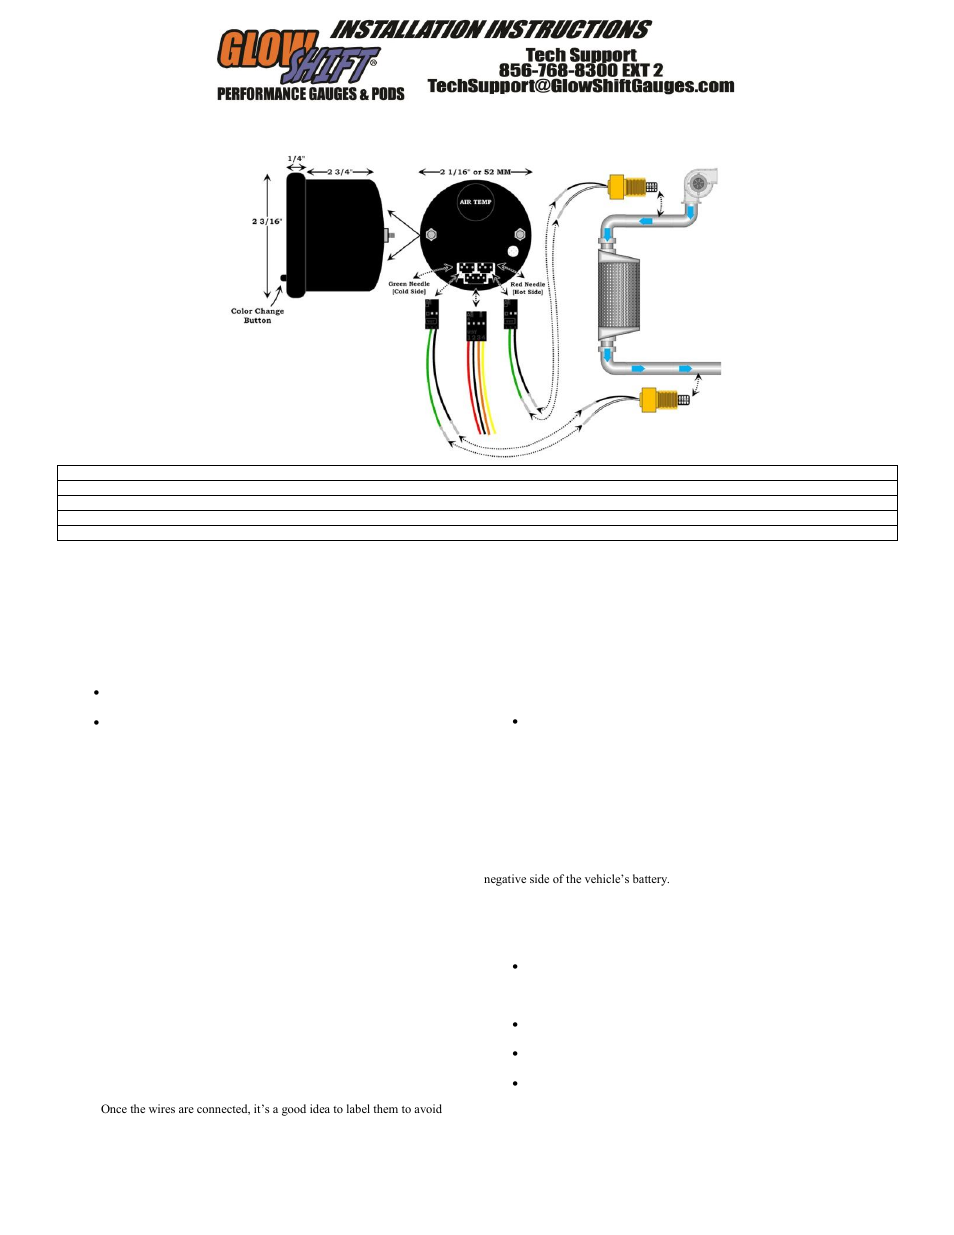 glowshift gauges wiring diagram   31 wiring diagram images